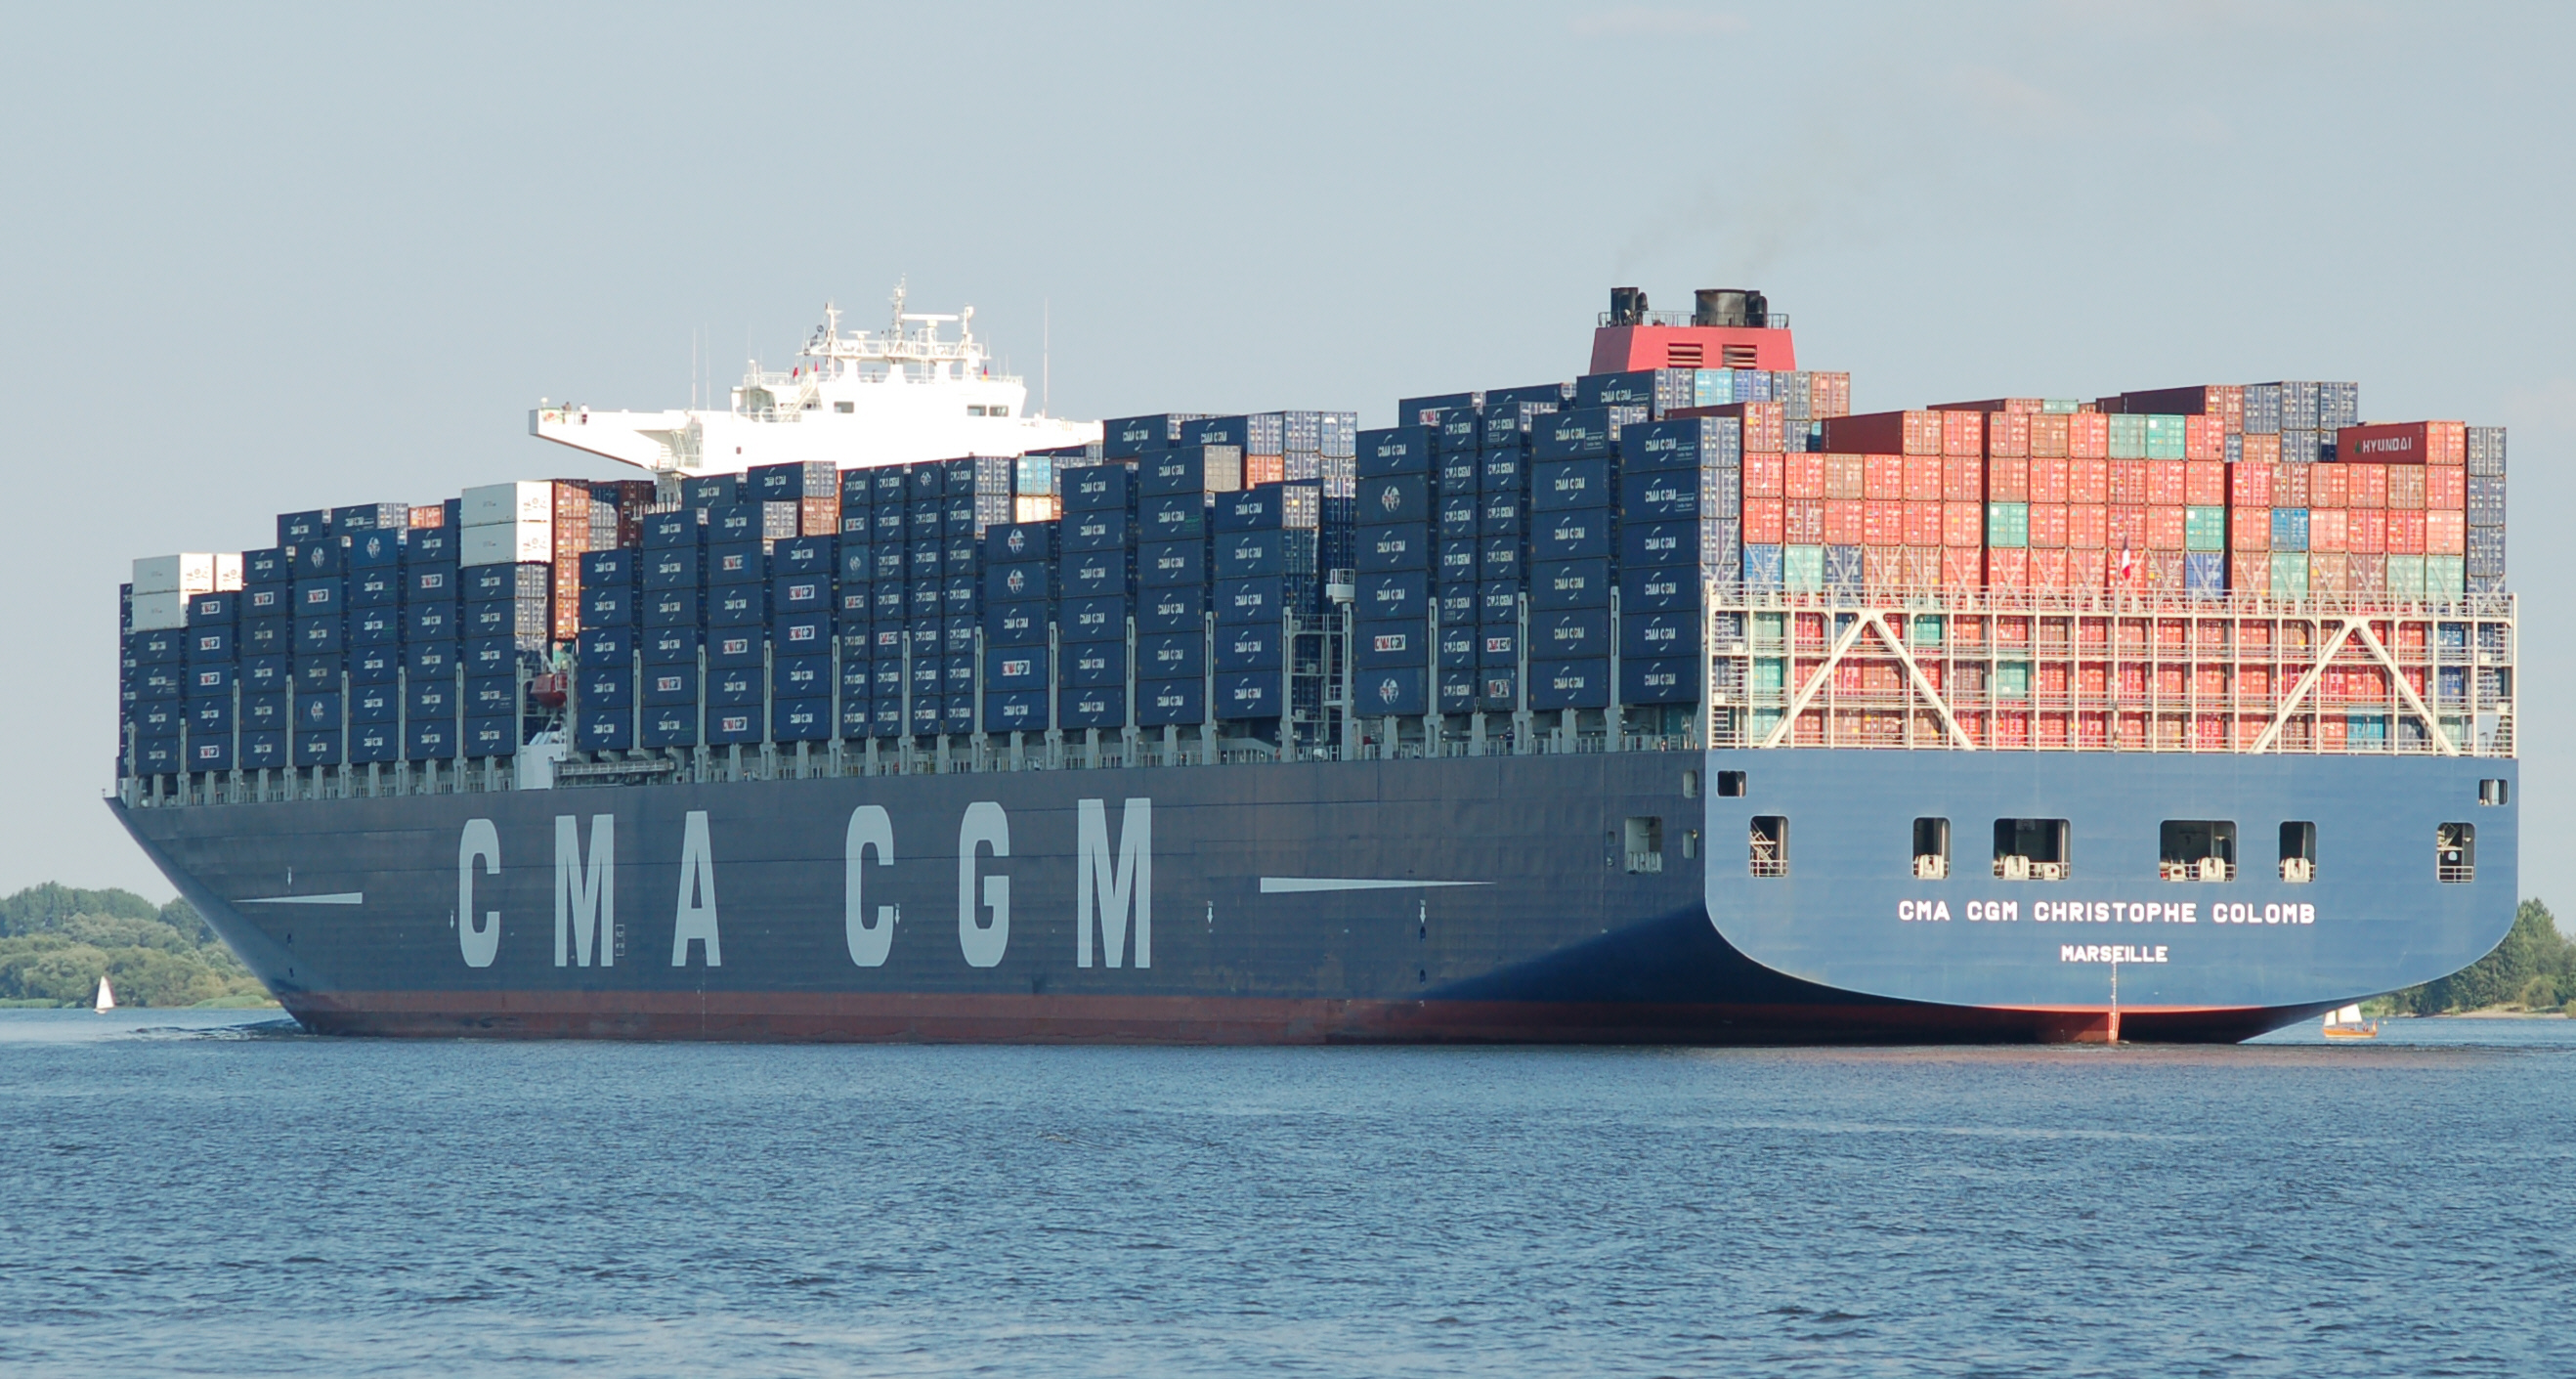 Description CMA CGM Christophe Colomb 04.jpg